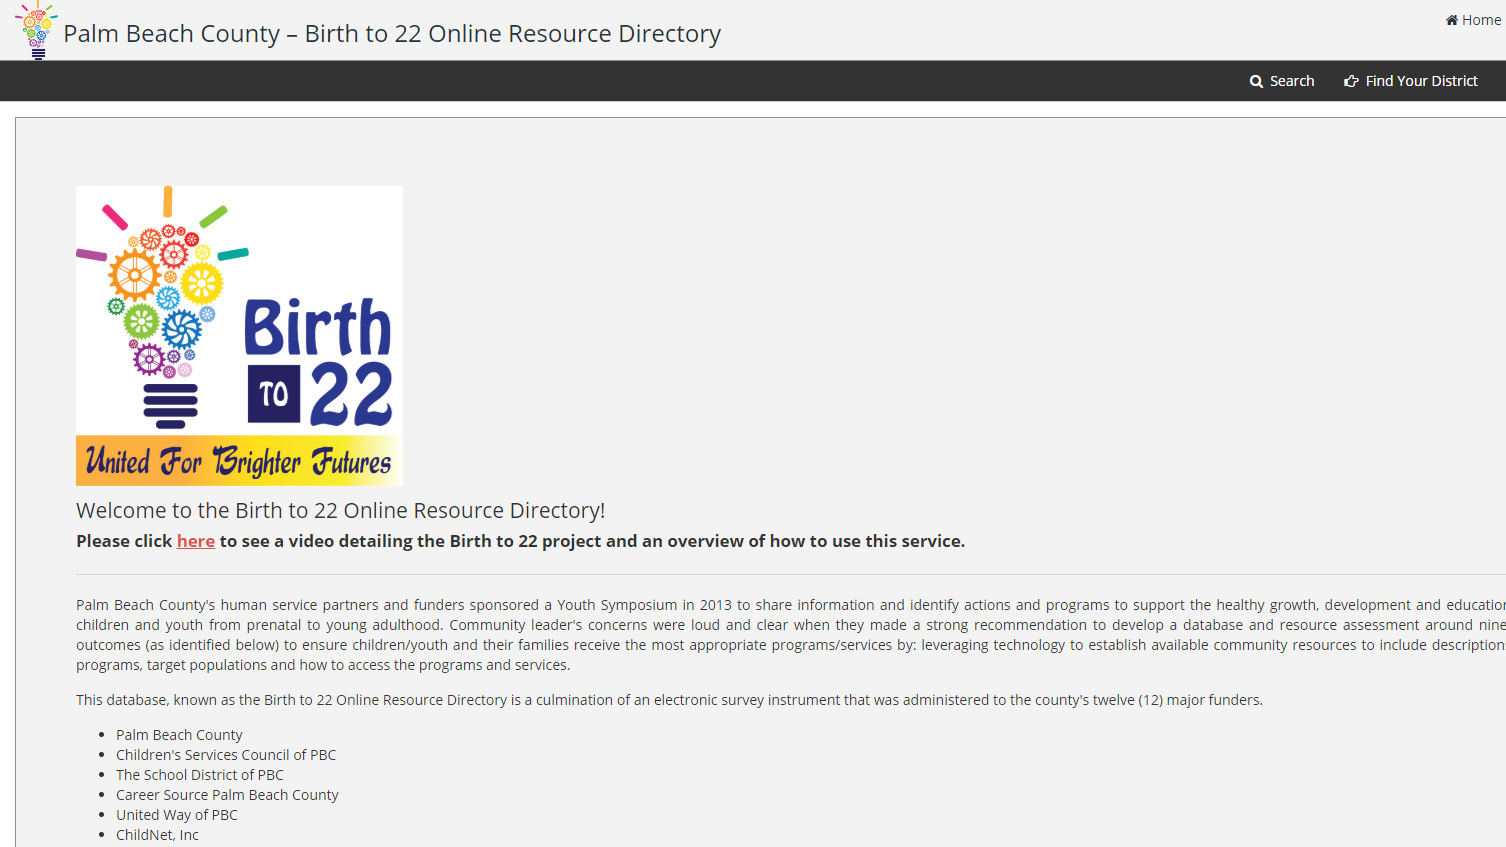 Using the Online Resource Directory